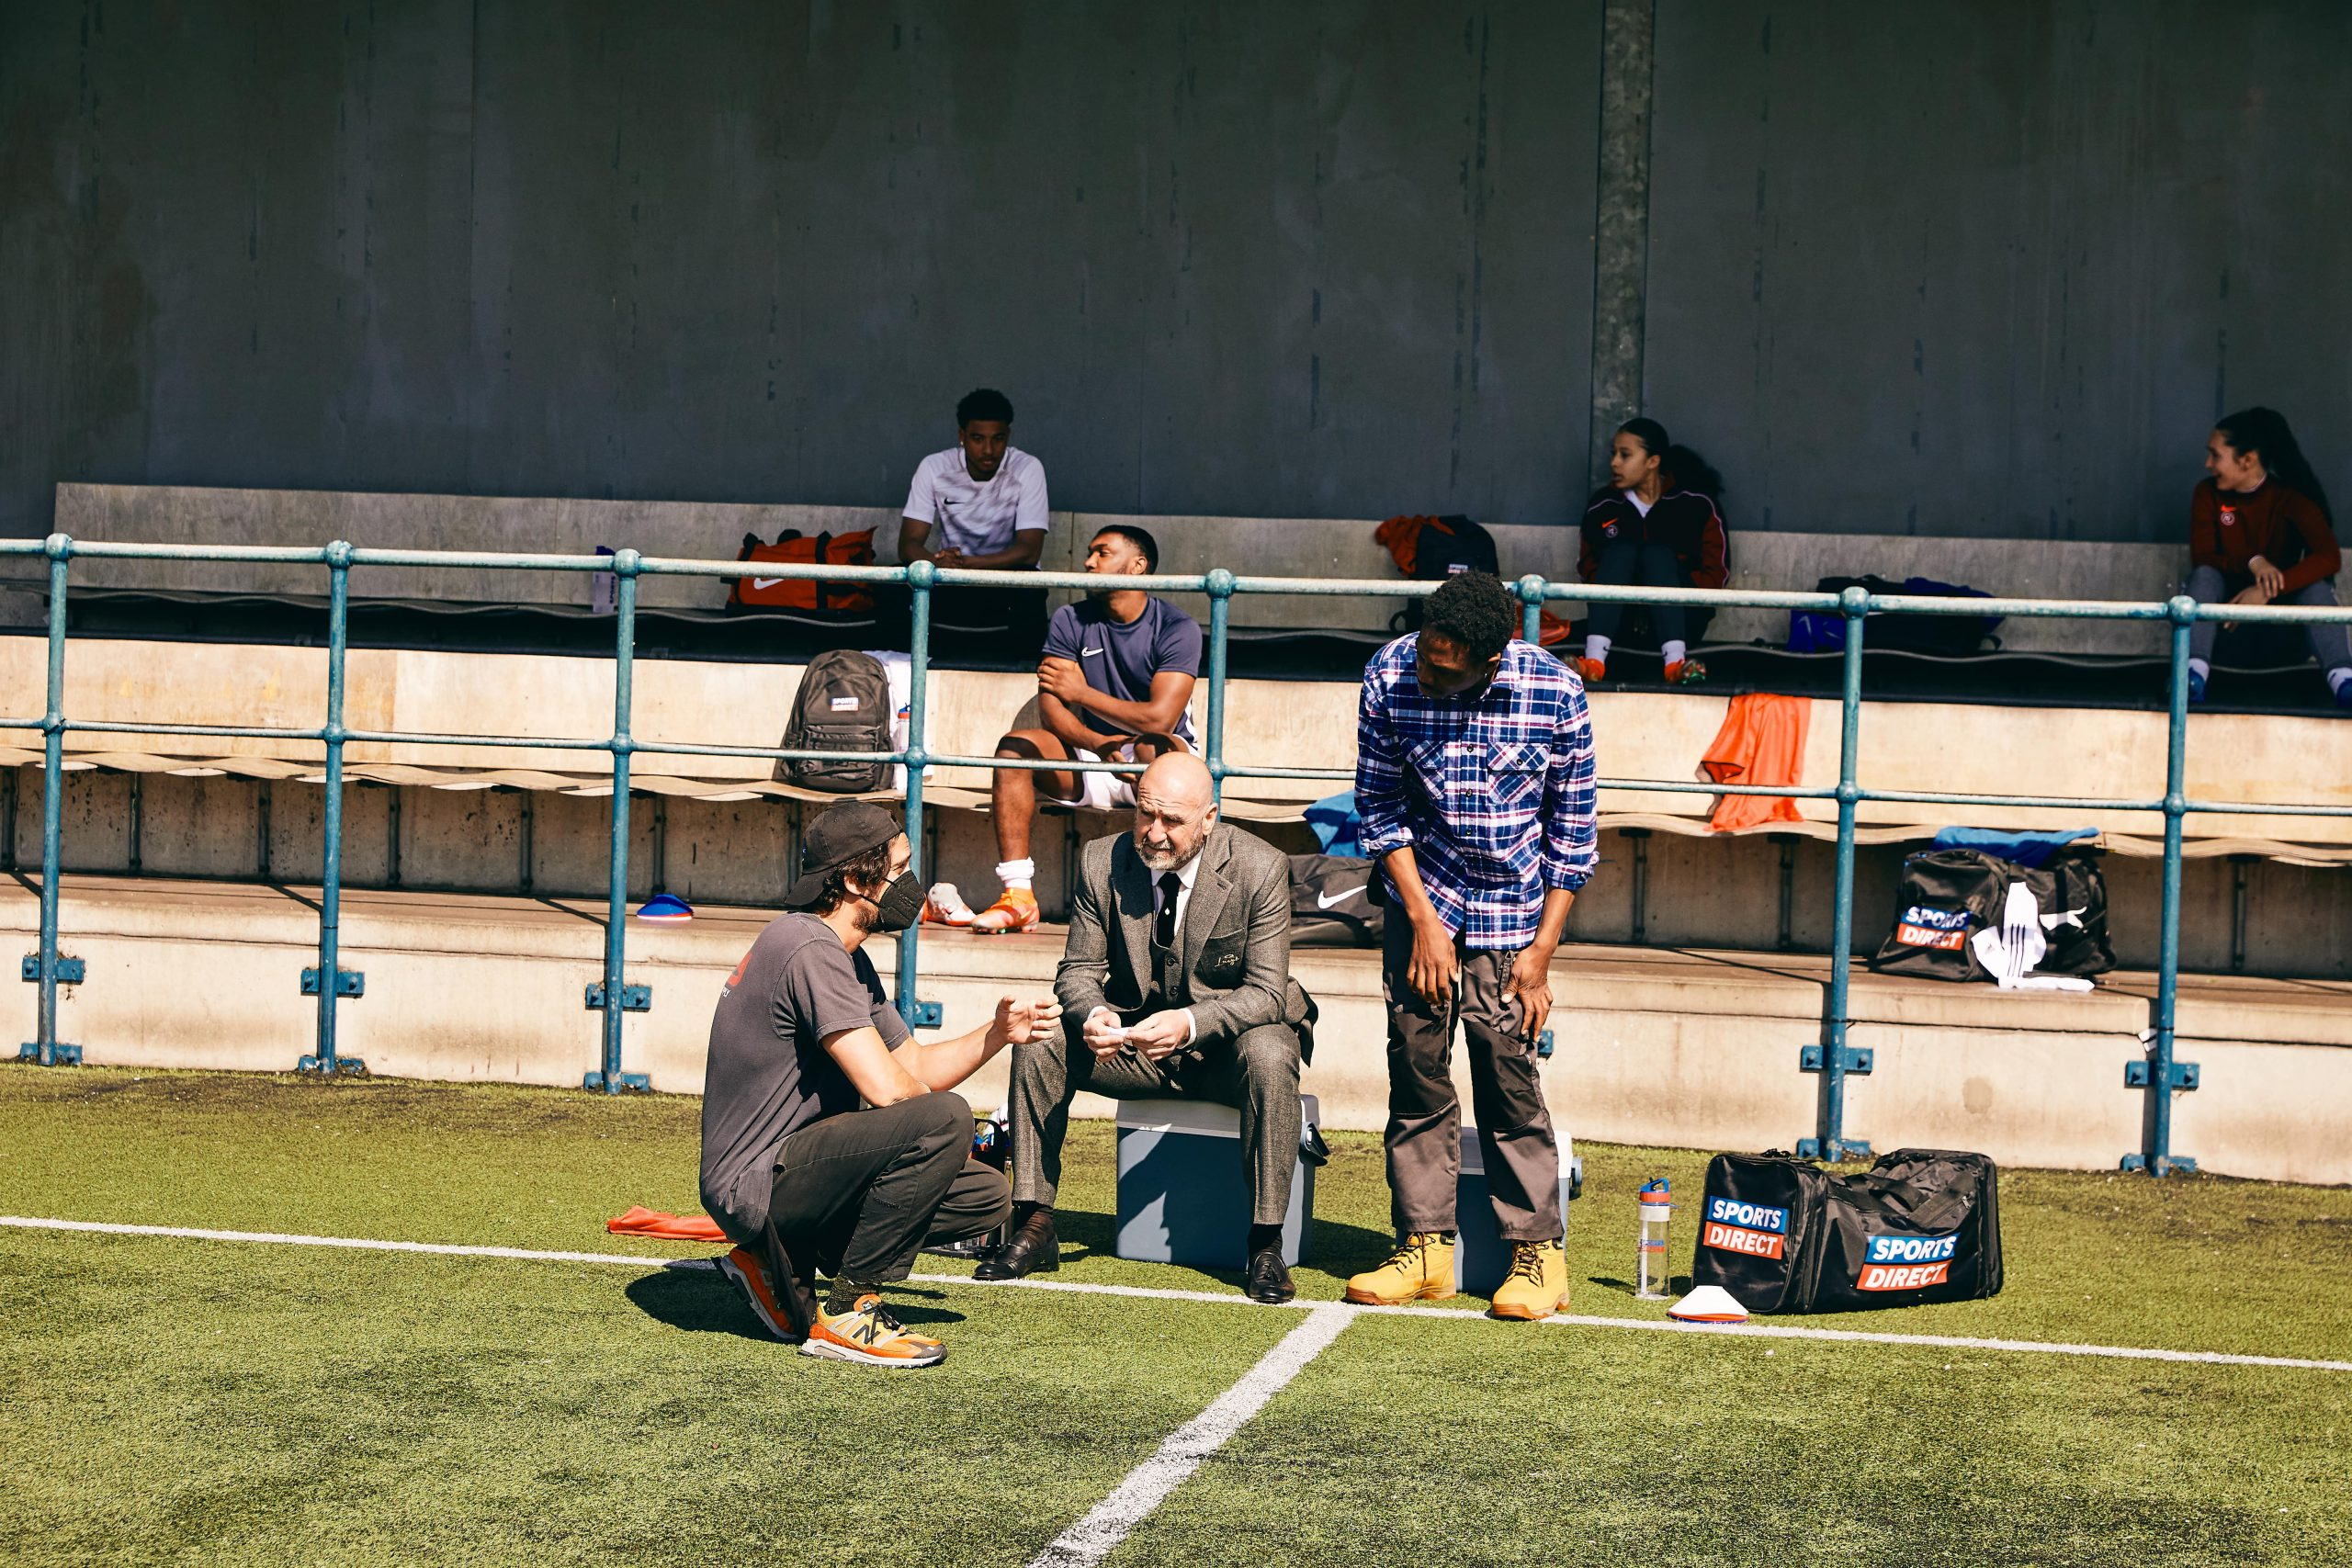 Sports Direct_TVC_Just A Game_BTS_Eric Cantona-min